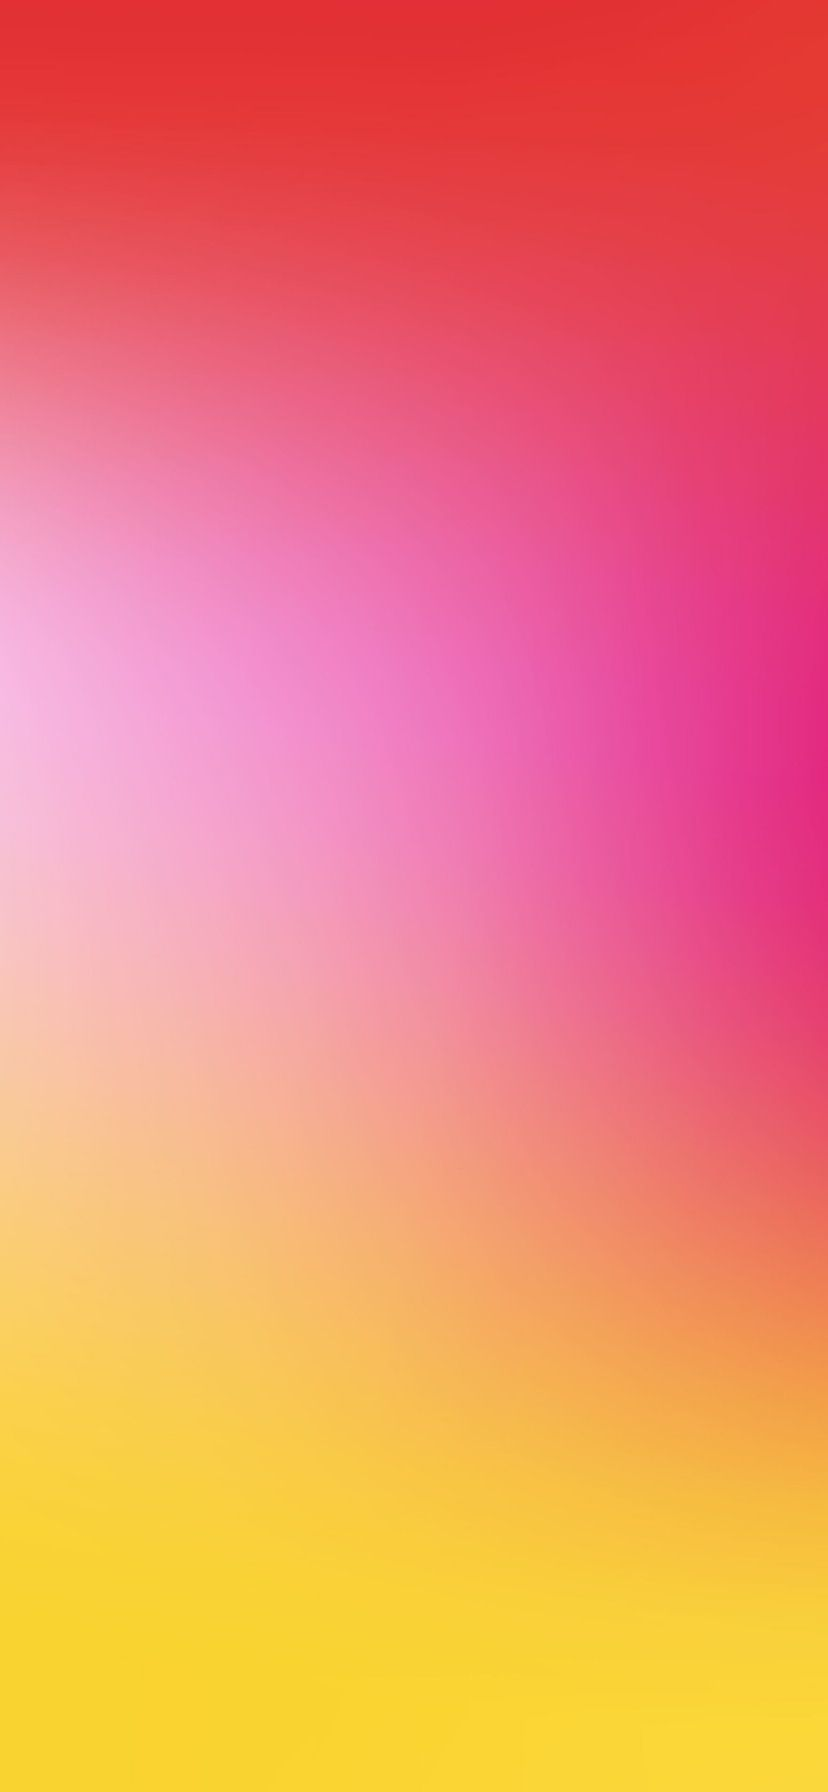 Wallpapers Iphone Xr Love In 2019 Ombre Wallpaper Iphone Ombre